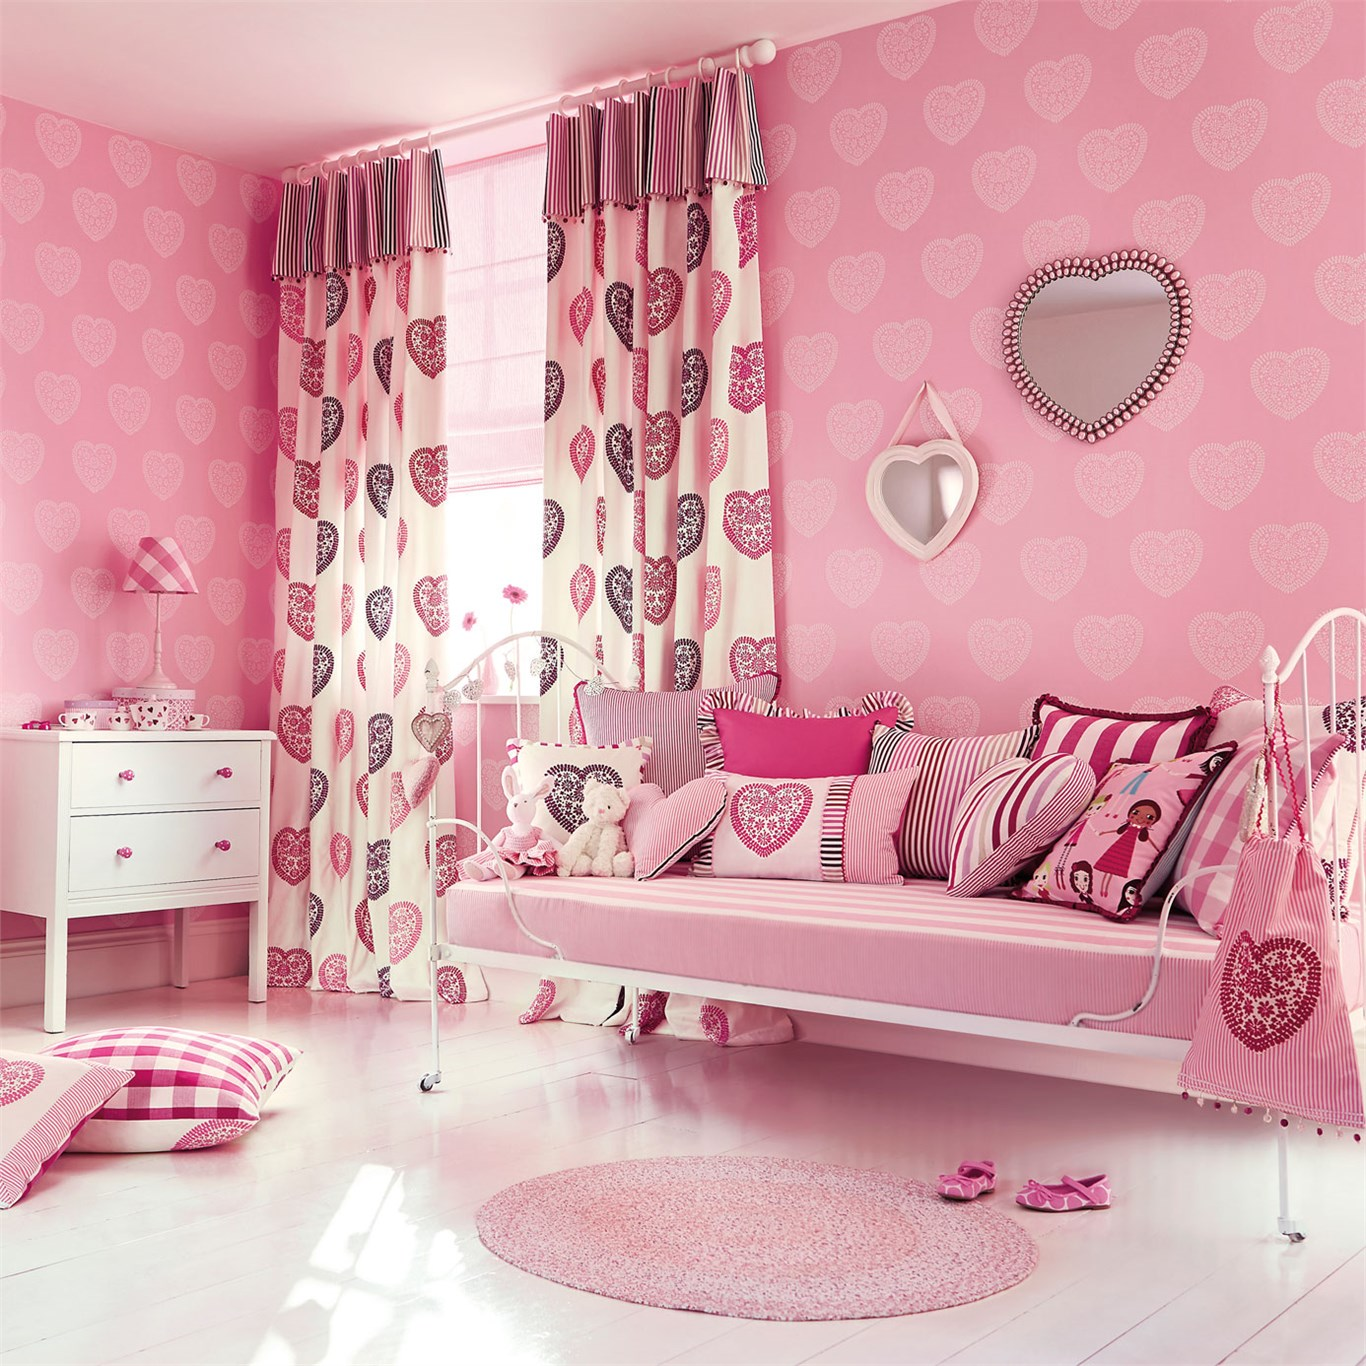 Harlequin Sweet Hearts Wallpaper